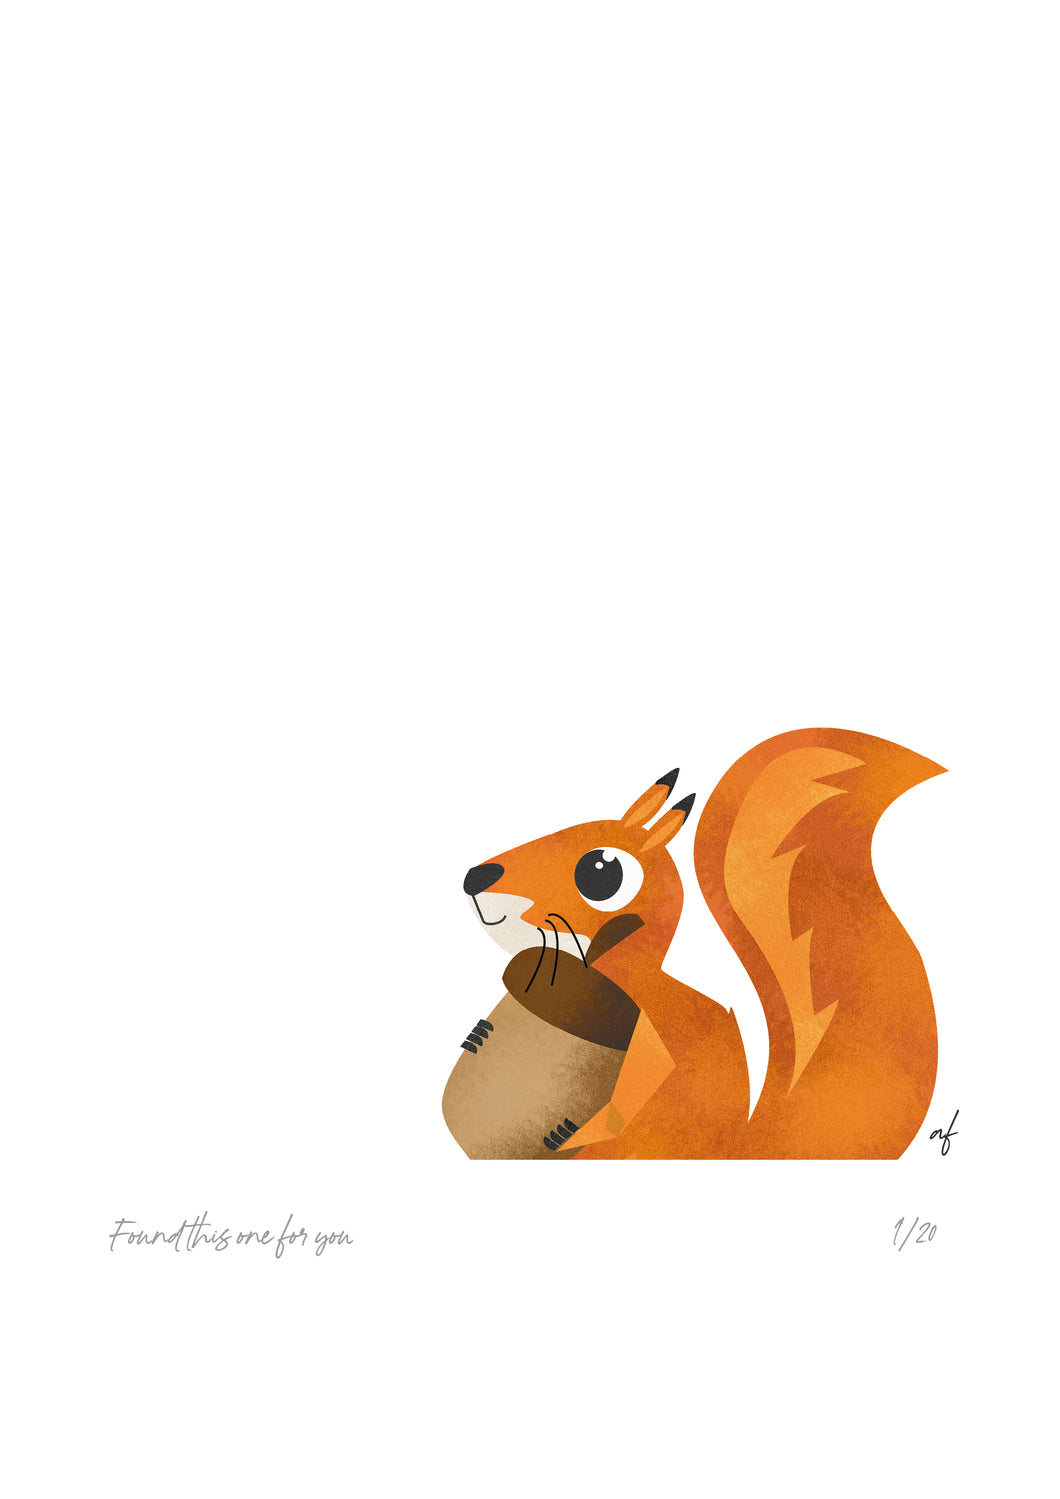 Found this one for you (squirrel)